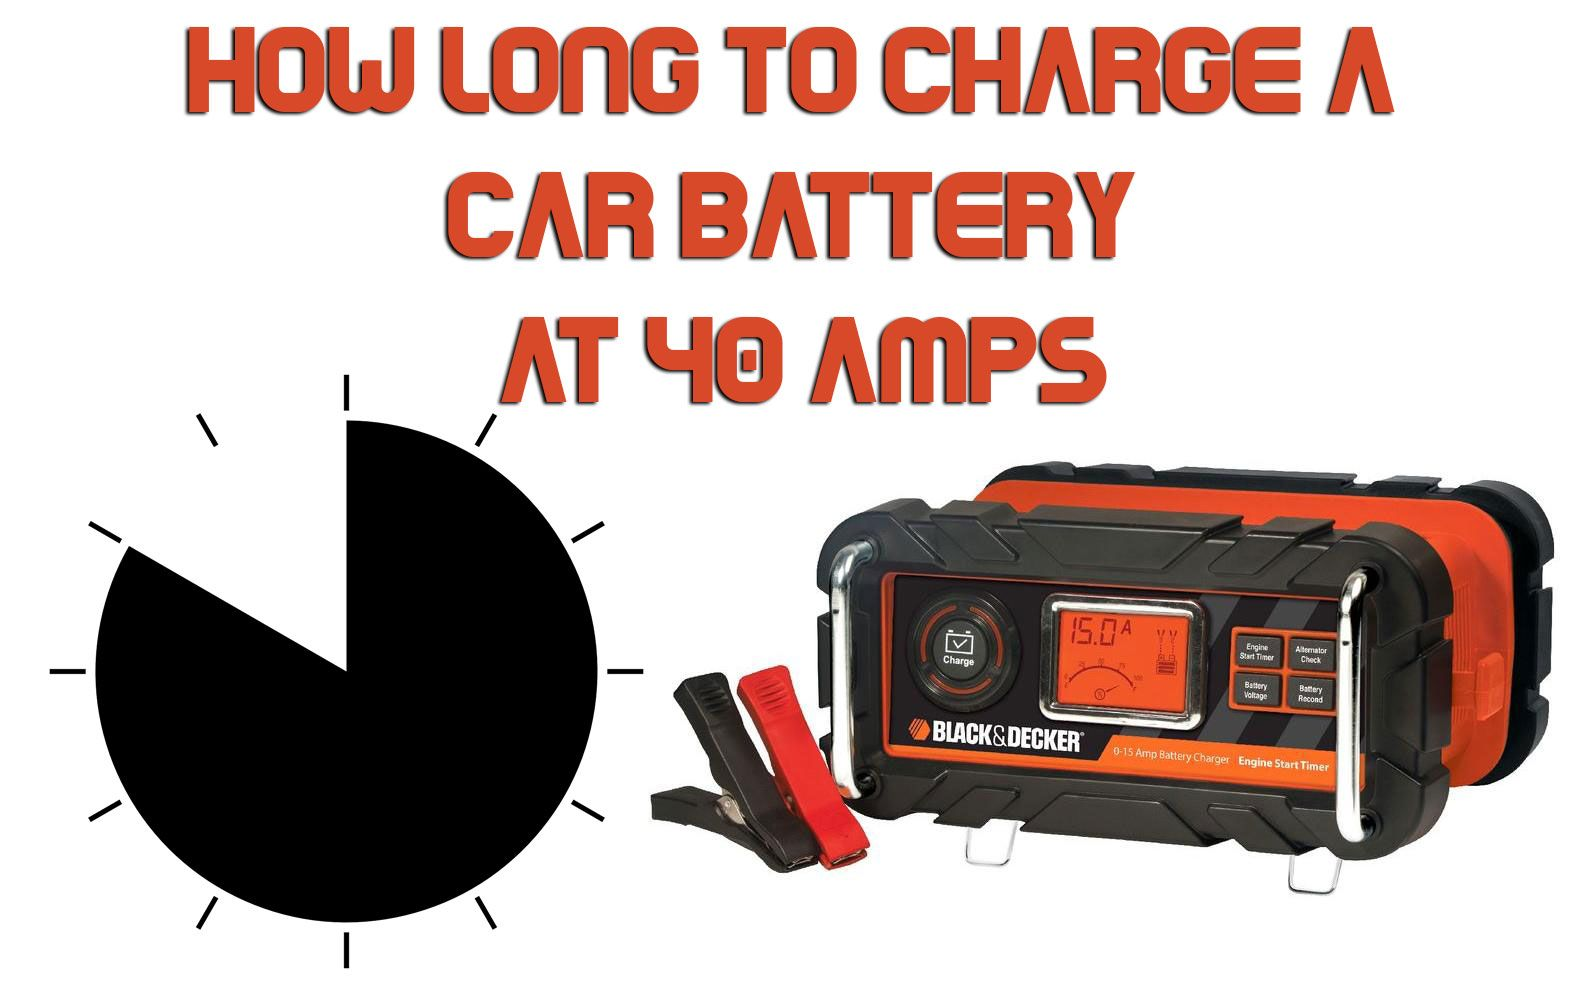 How Long To Charge A Car Battery At 40 Amps Car Battery Charging Car Battery Charger Car